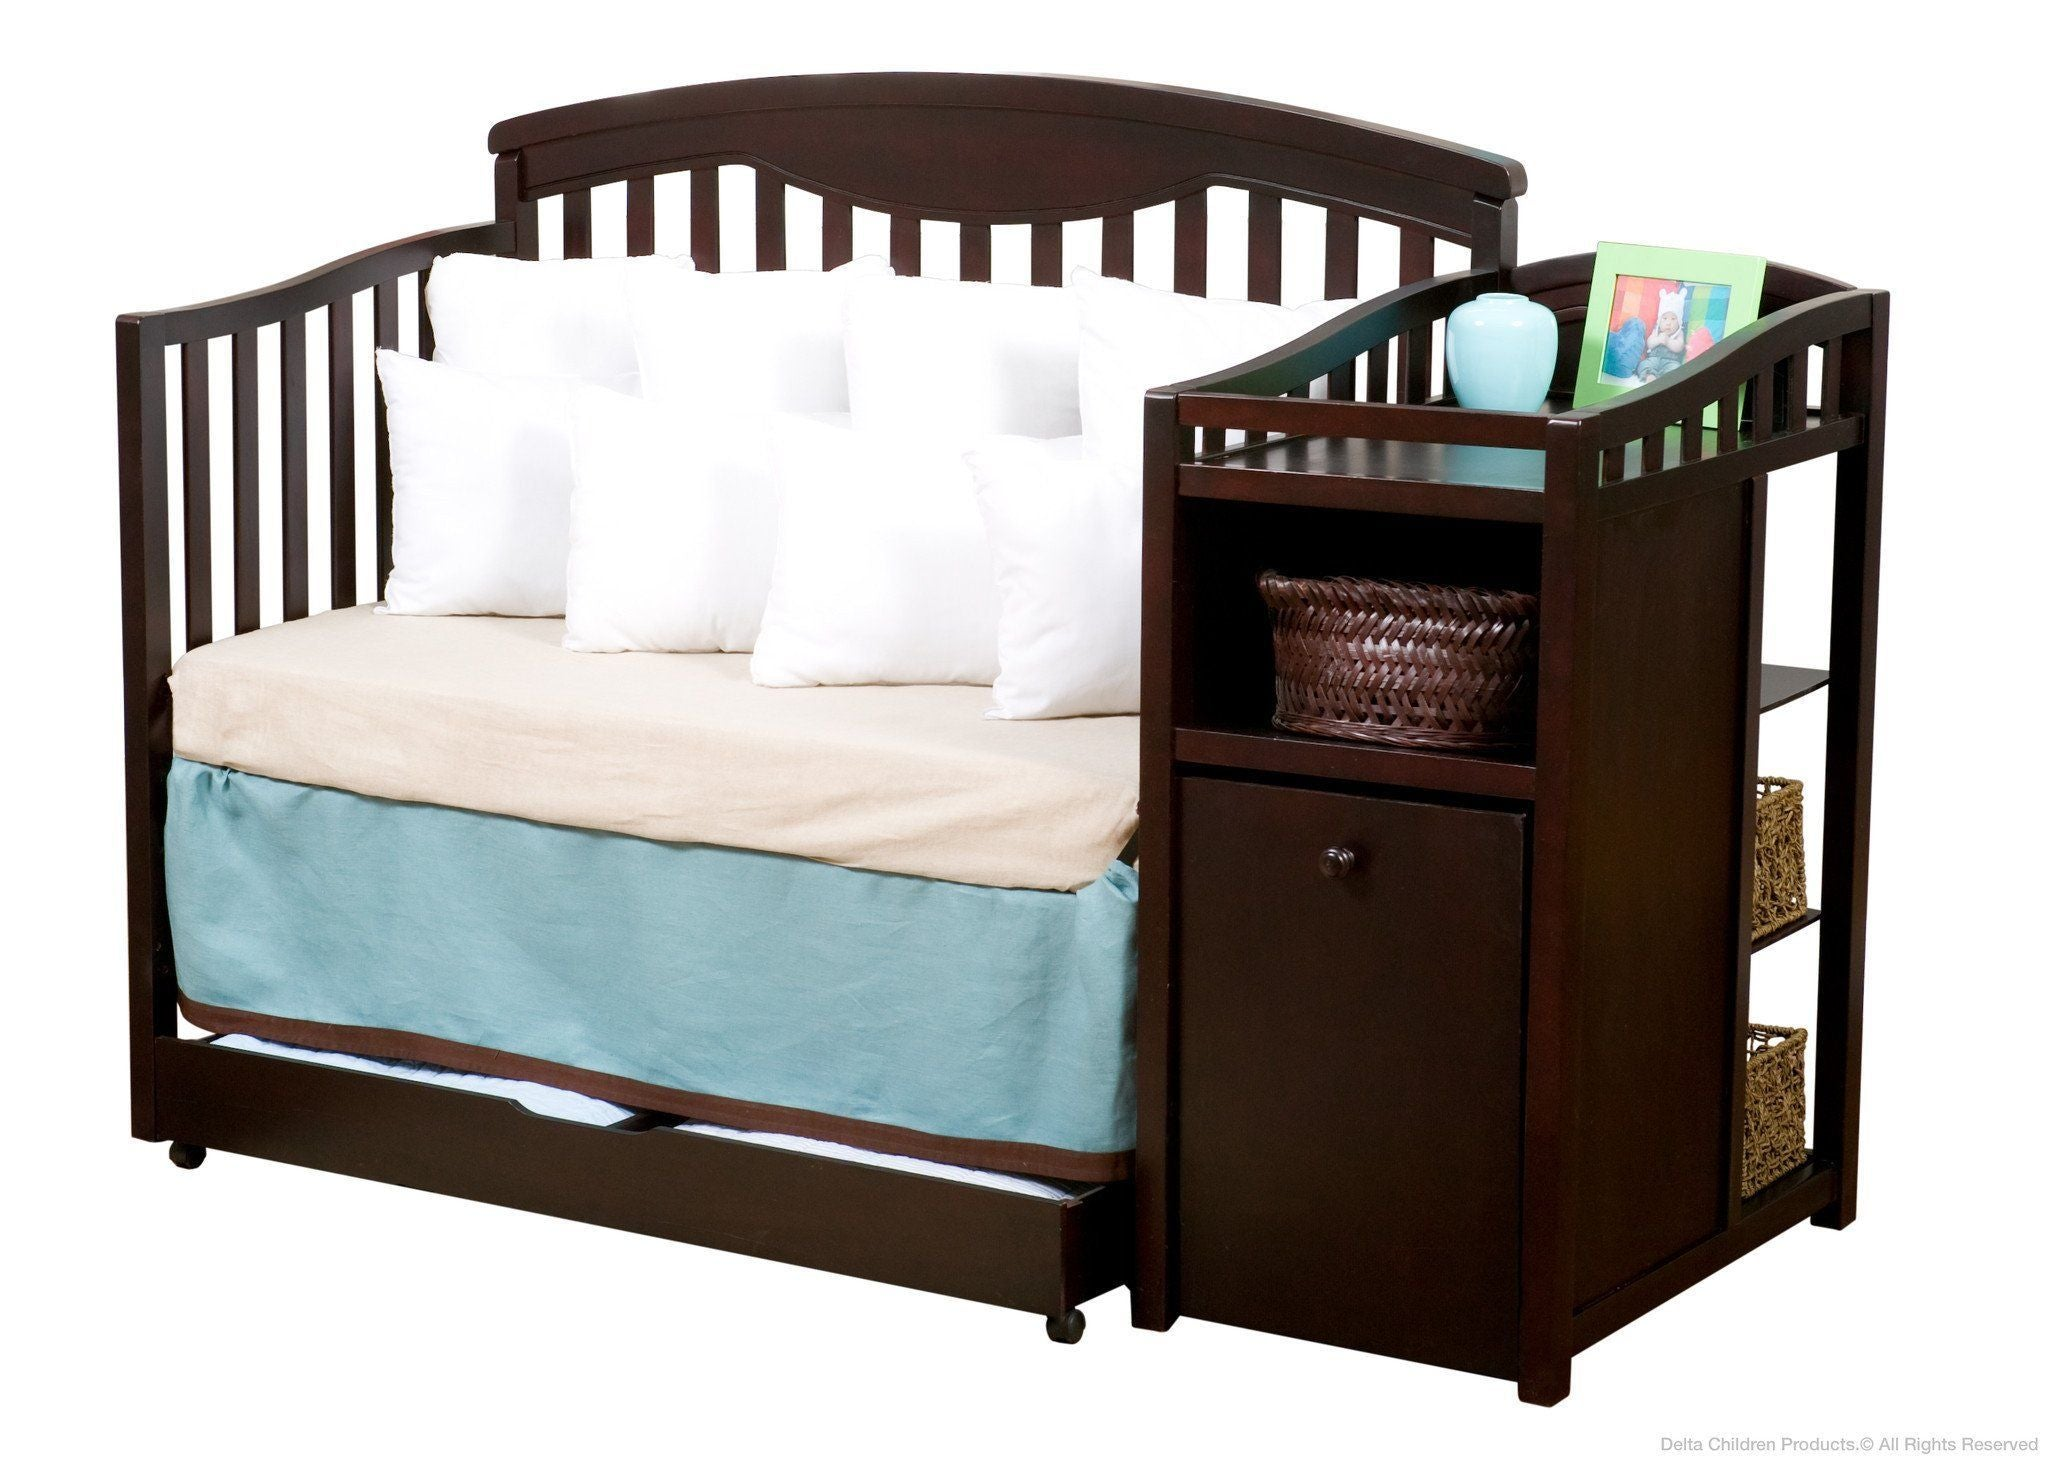 Delta Children Espresso Cherry (205) Cambridge Crib 'N' Changer, Day Bed Conversion a4a